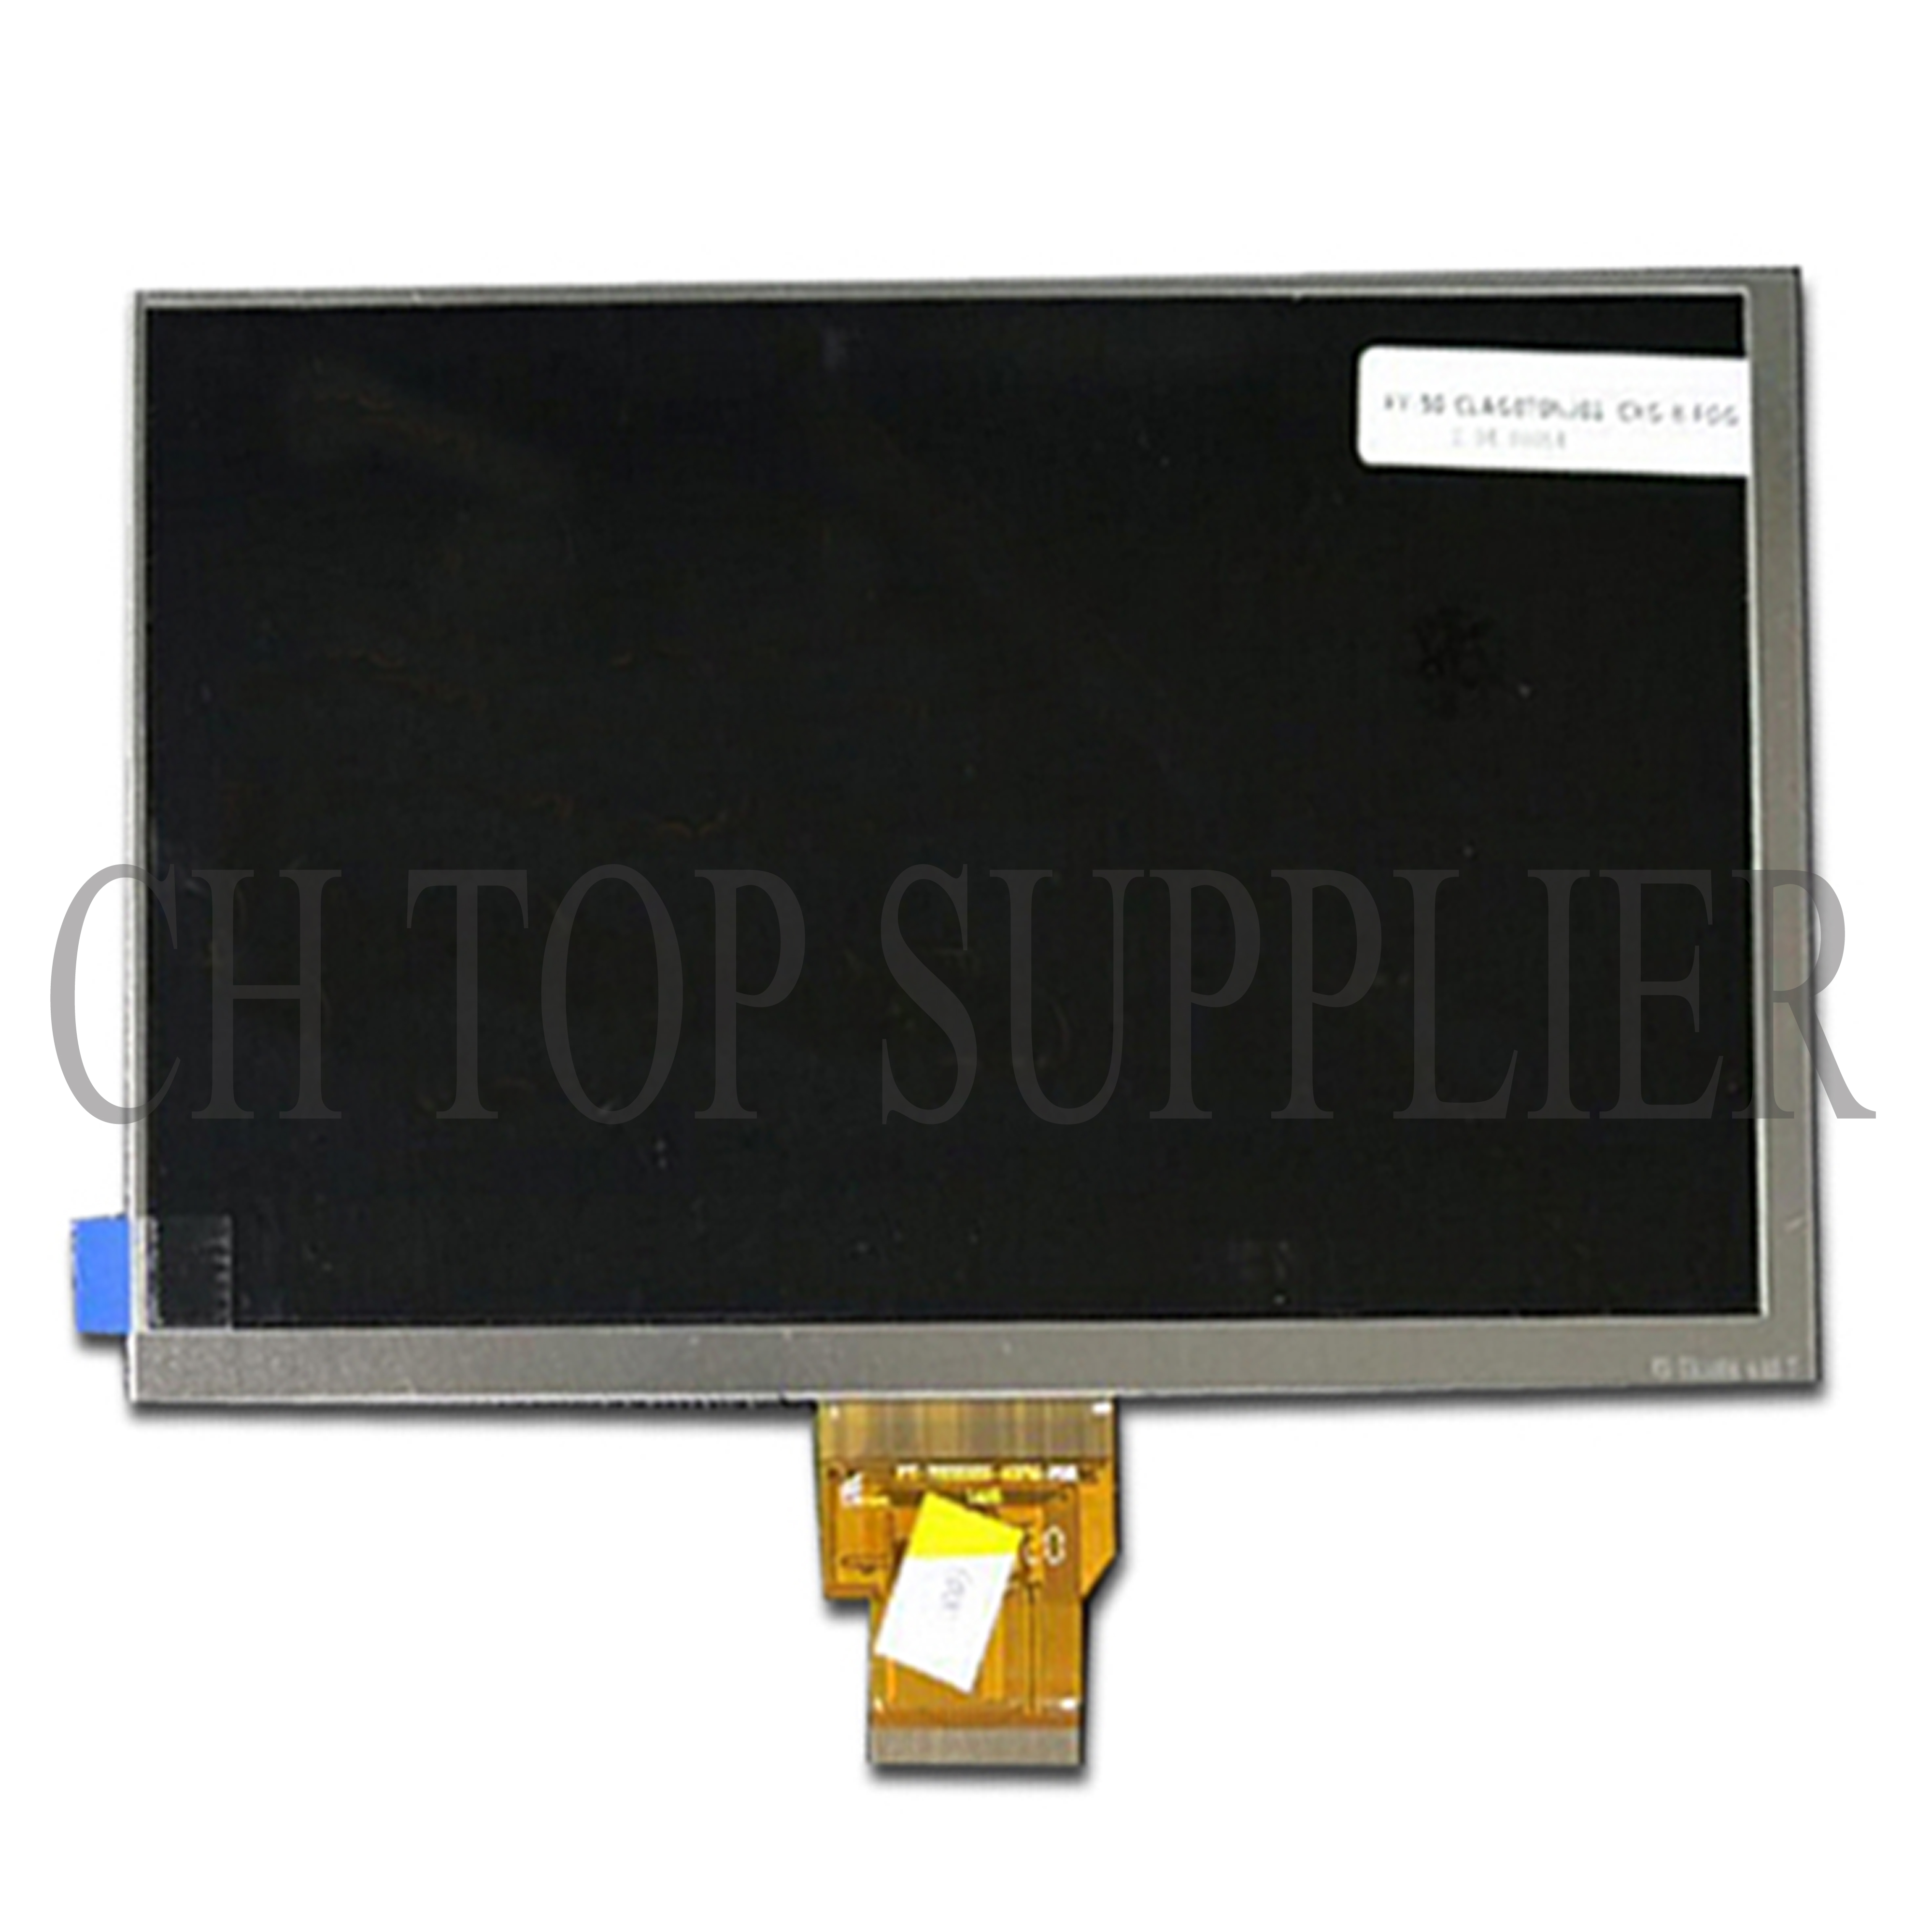 New LCD Display FY07024DI26A116-1-FPC1-B For 7.0 inch Tablet IPS inner LCD screen Matrix panel Glass Module Free Shipping free shipping originalnew 9 inch lcd screen cable number fy 90dh 40p p09